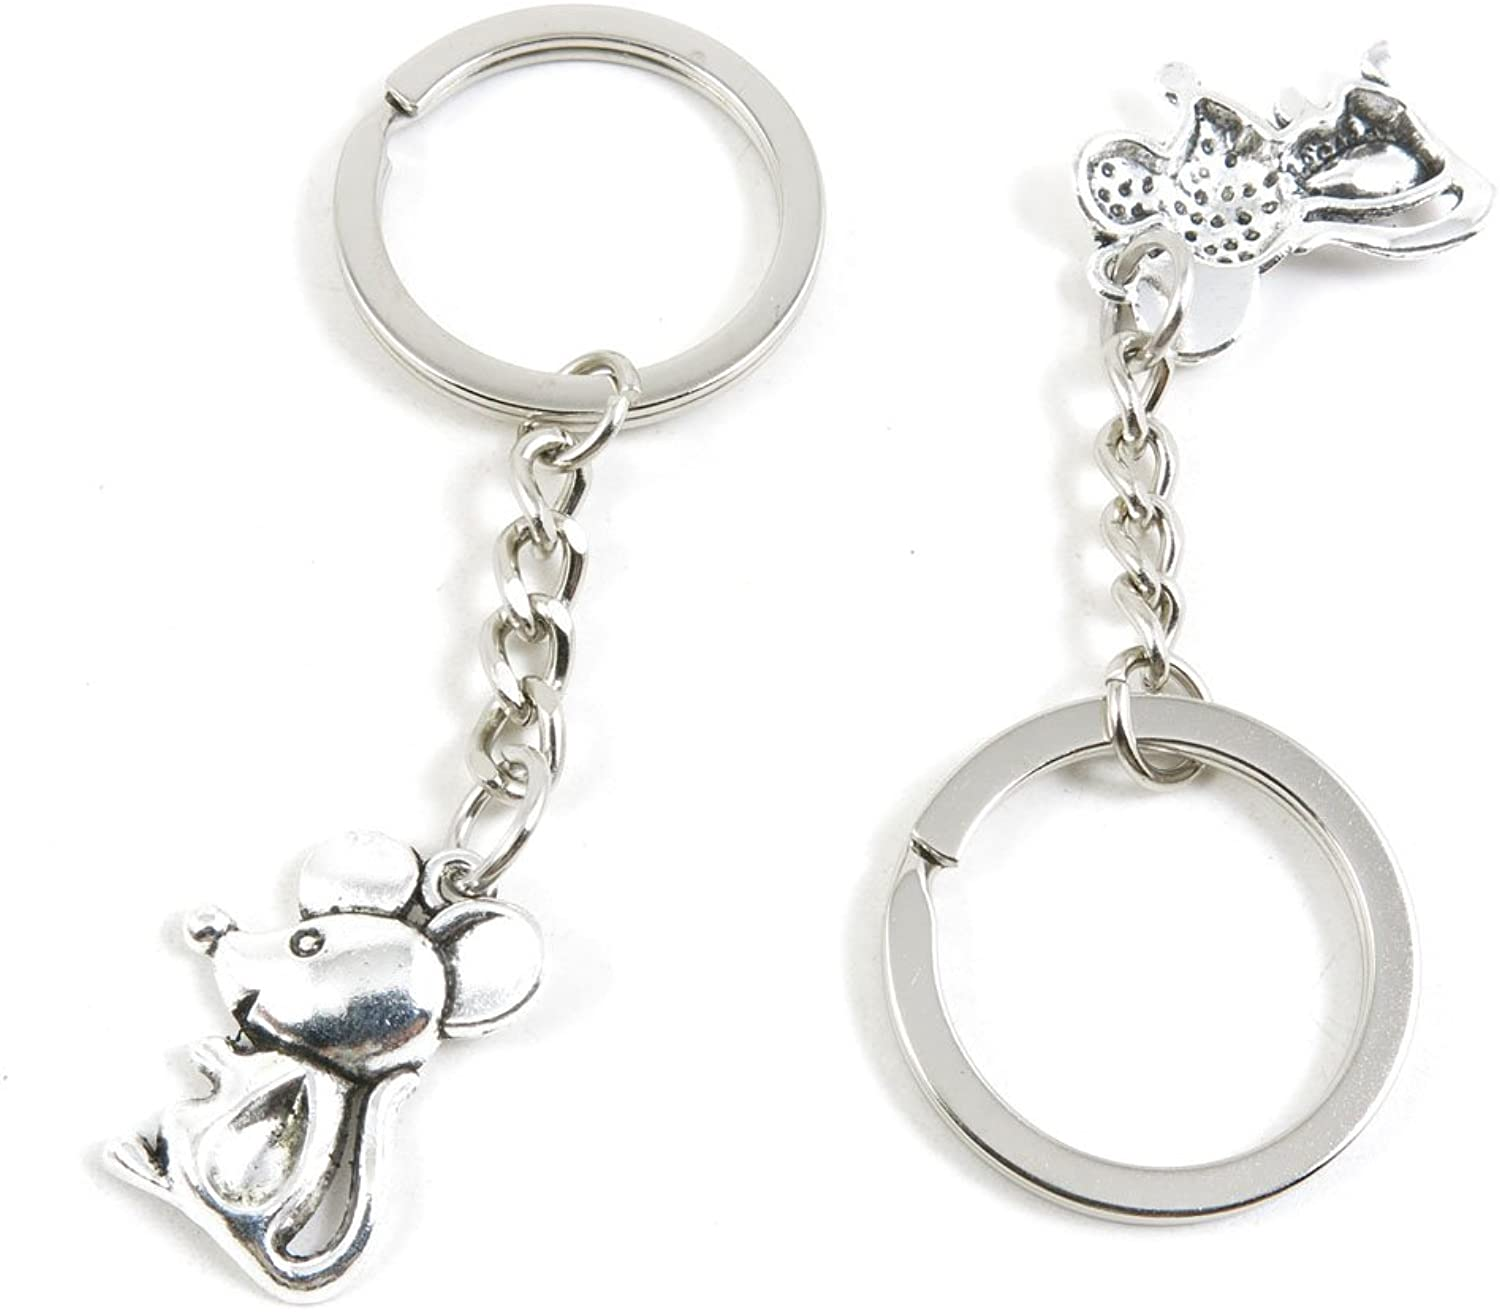 210 Pieces Fashion Jewelry Keyring Keychain Door Car Key Tag Ring Chain Supplier Supply Wholesale Bulk Lots P6MY8 Mouse Rat